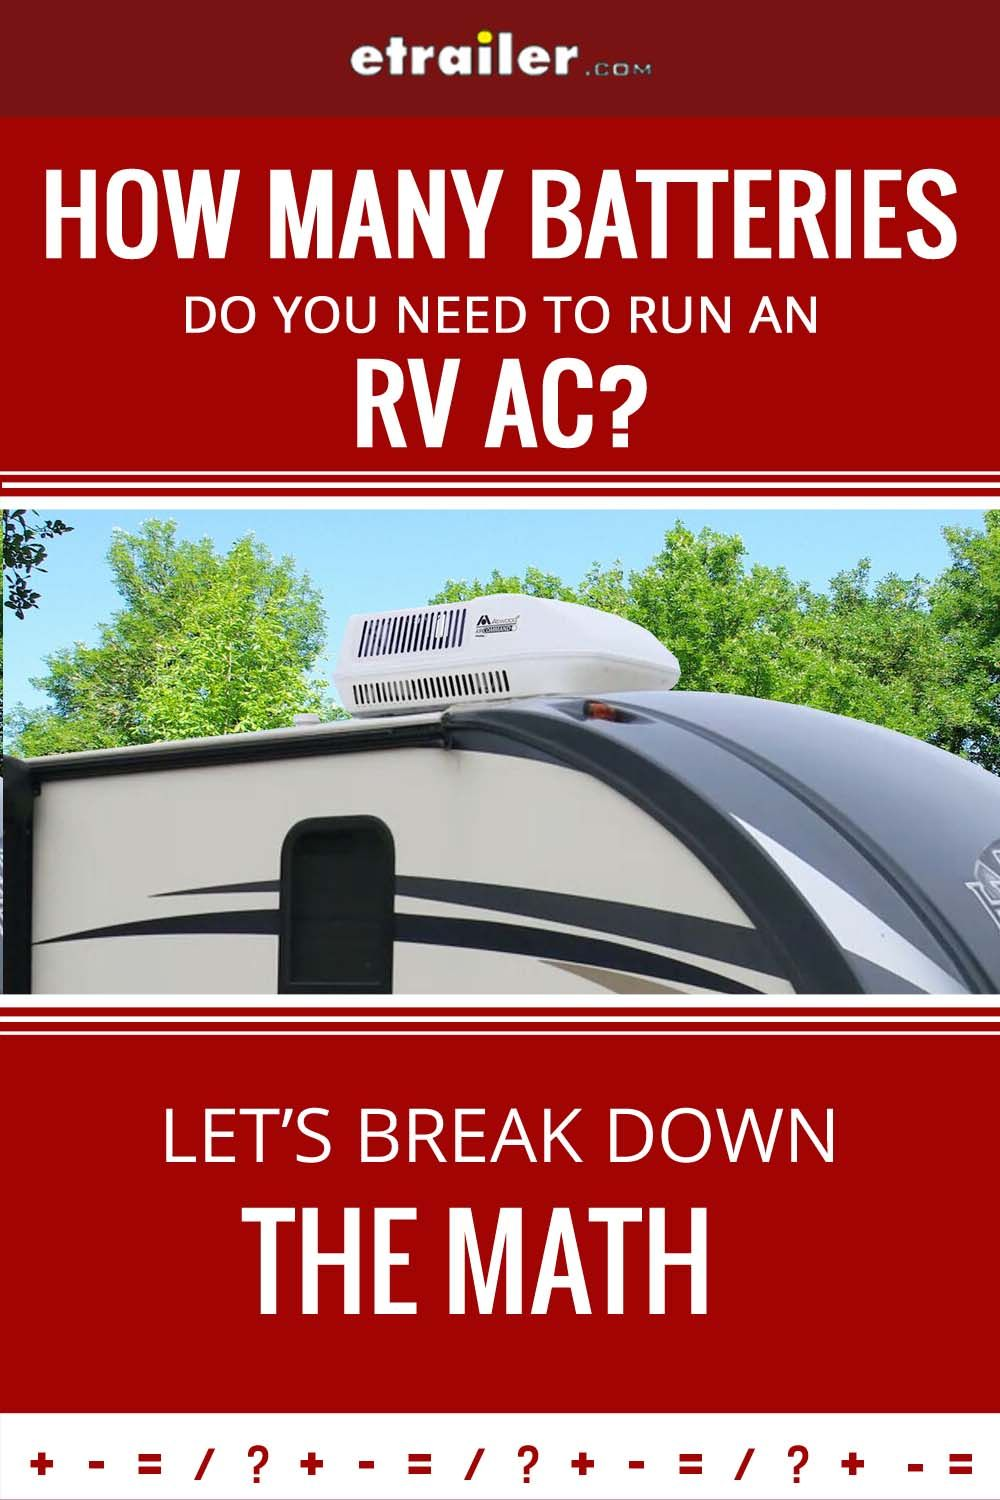 No One Likes Their Rv To Feel Like A Sauna But Running Your Rig S Ac Takes A Lot Of Power Can You Run An Rv Air Cond Rv Air Conditioner Batteries